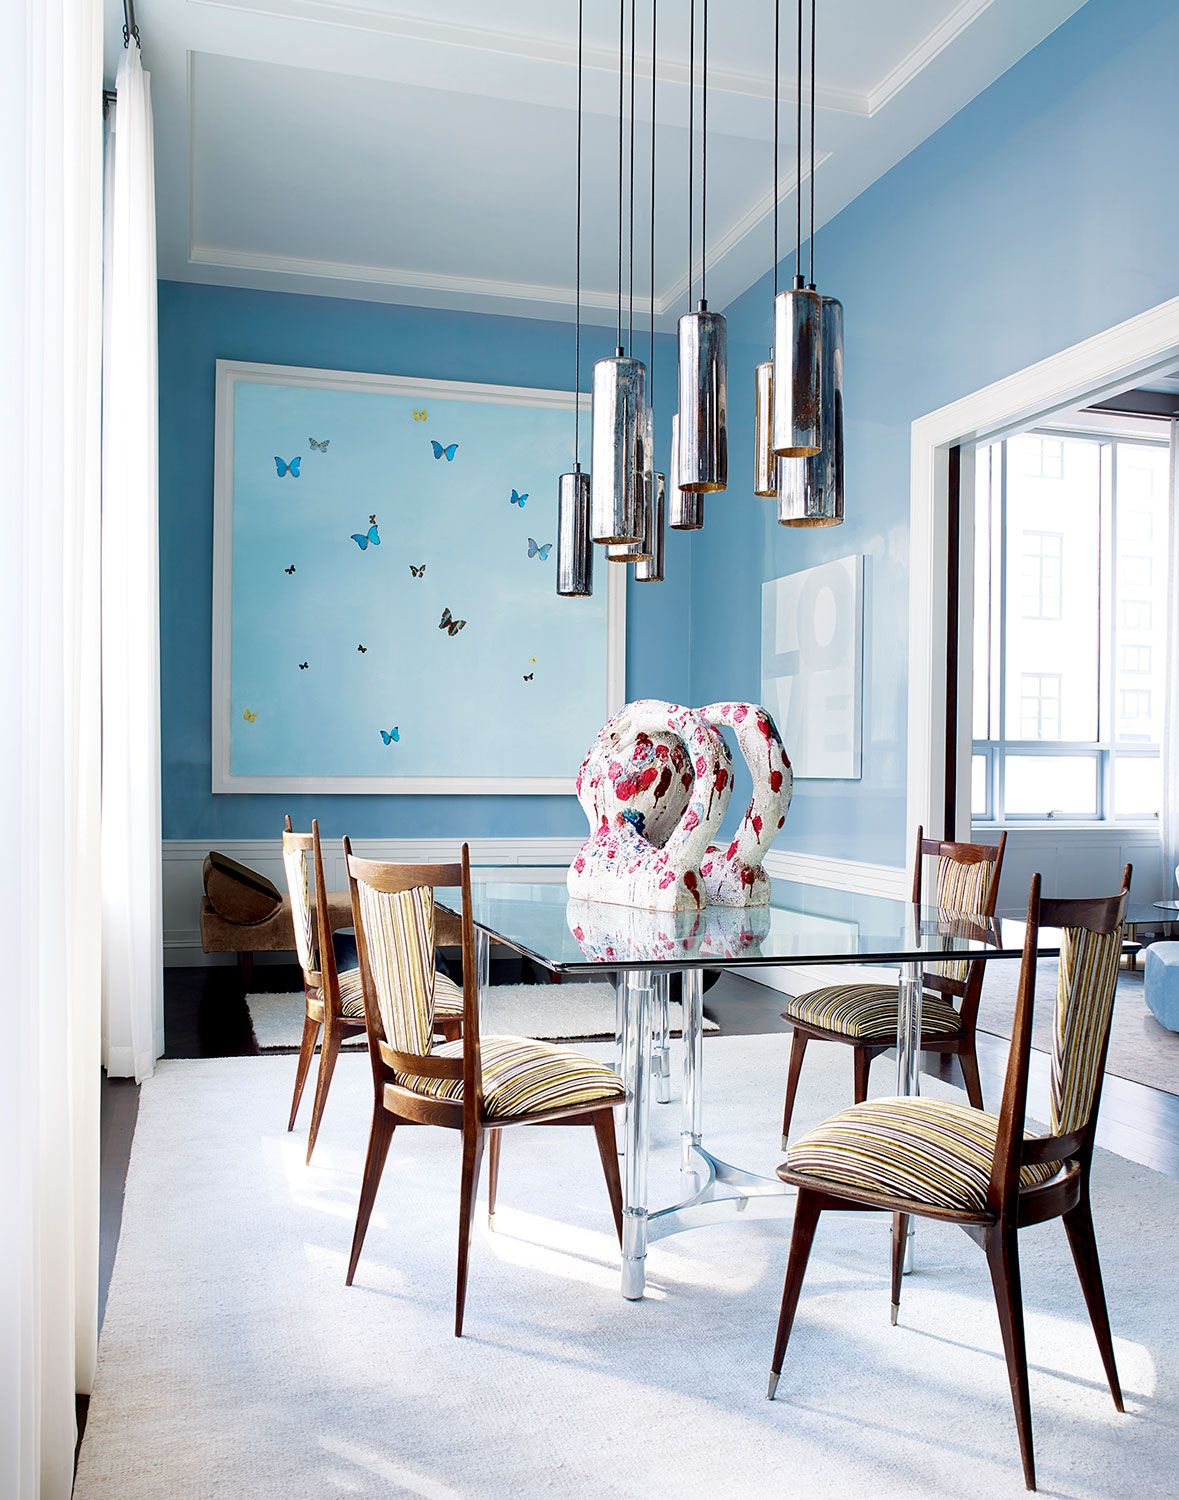 Italian chairs from the 1960s surround the vintage dining table, and the vintage mercury-glass canister pendants are by Gregory Rogan; the sculpture is by William J. O'Brien; a butterfly painting by Damien Hirst hangs above a Kevin Walz daybed by Ralph Pucci.